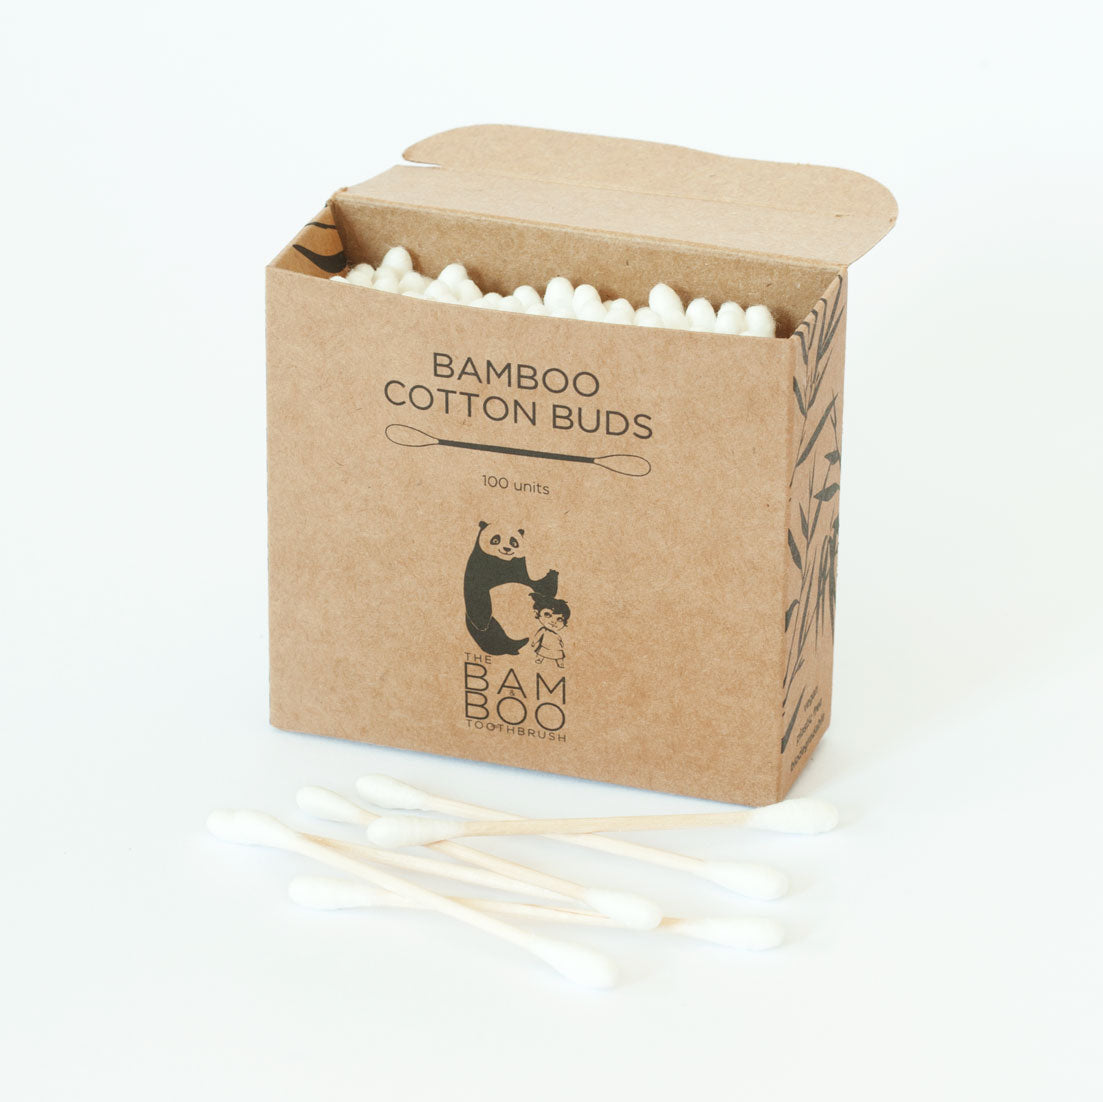 Bamboo Cotton Buds | Beauty | The Bam&Boo | [product_tag] - Fair Bazaar Ethical Living